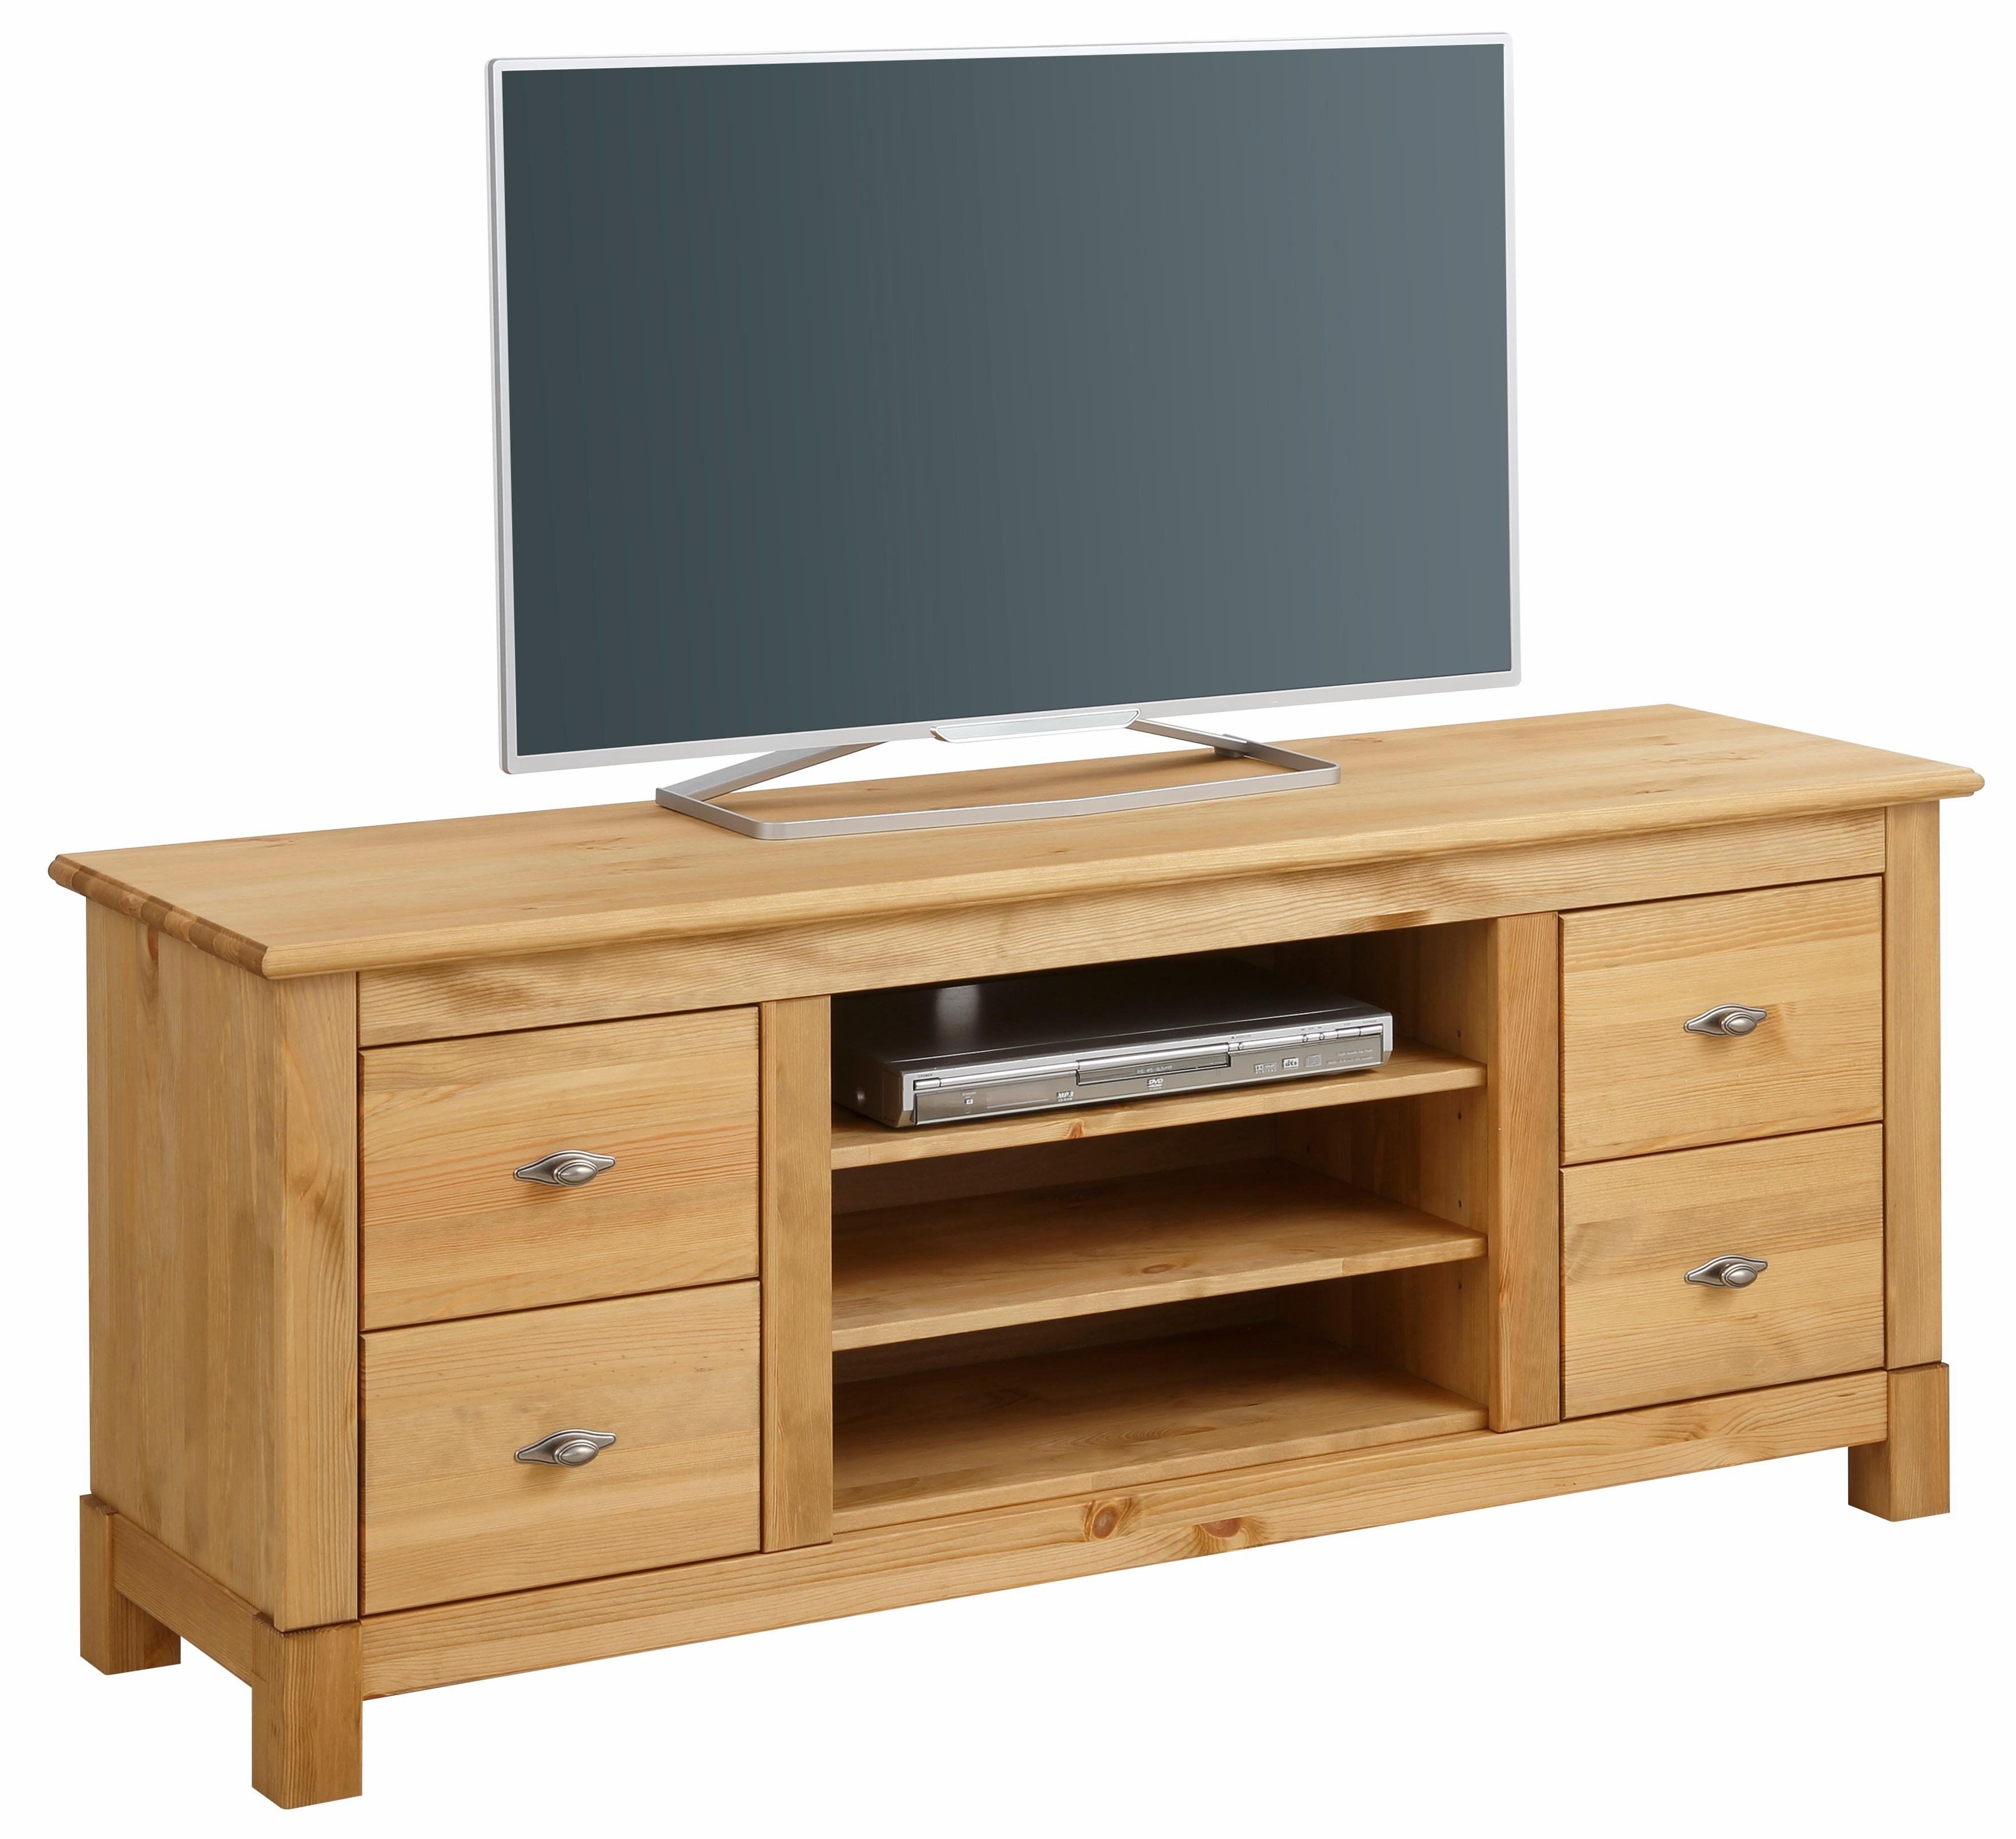 home affaire tv lowboard rauna breedte 150 cm in de. Black Bedroom Furniture Sets. Home Design Ideas